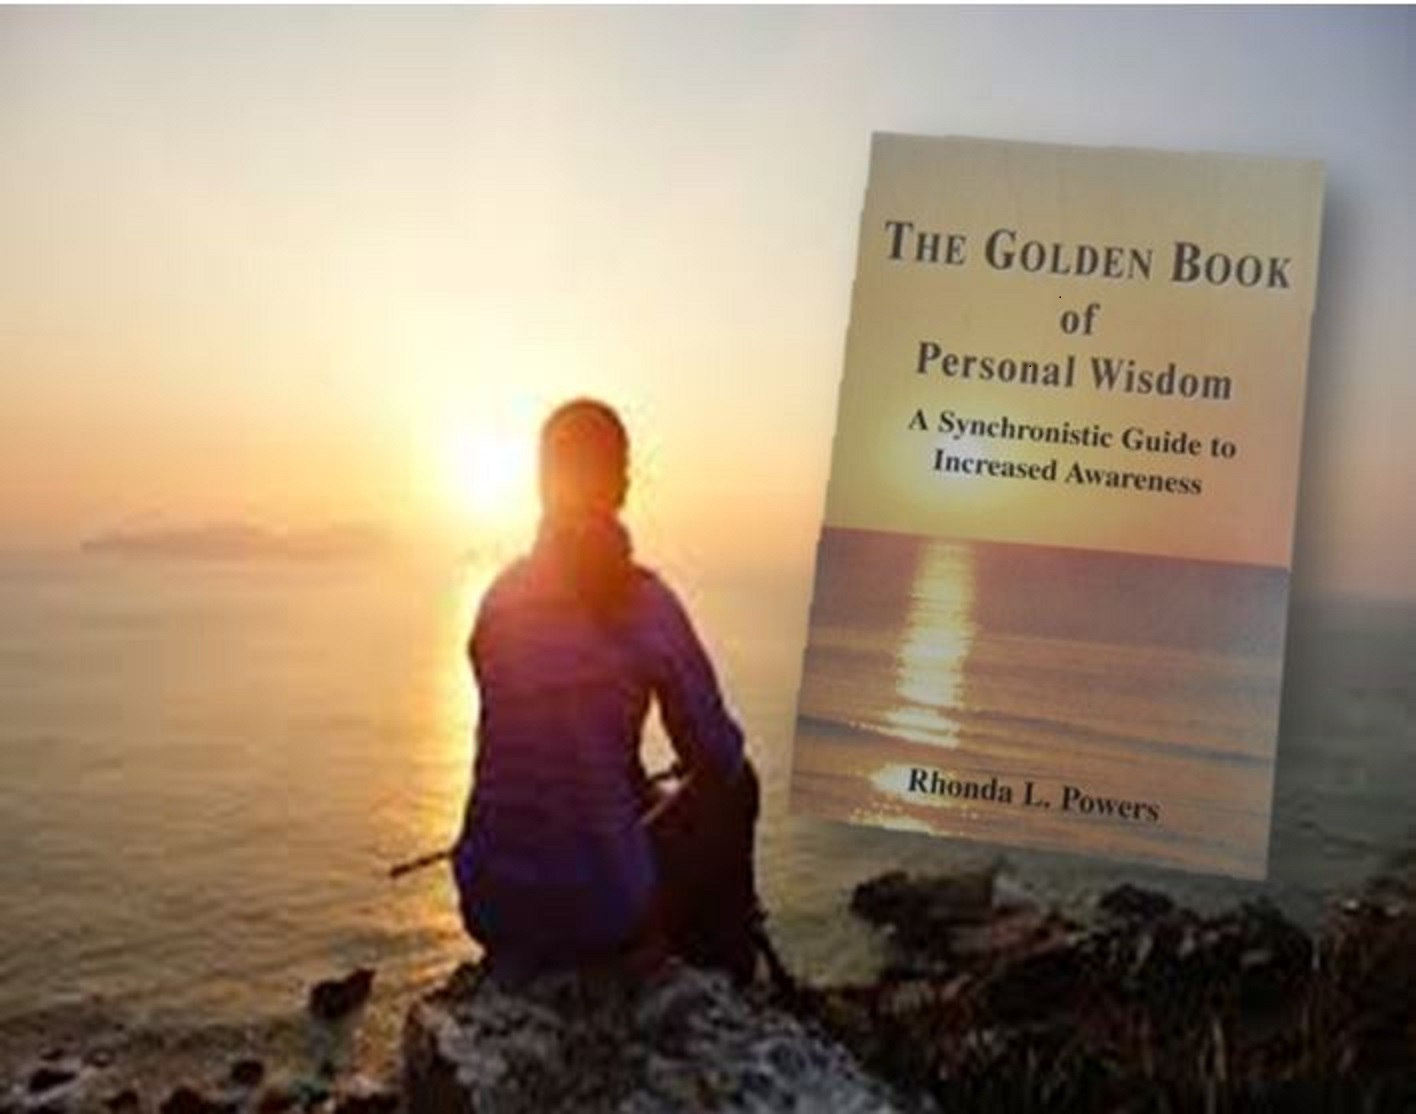 Golden Book of Personal Wisdom